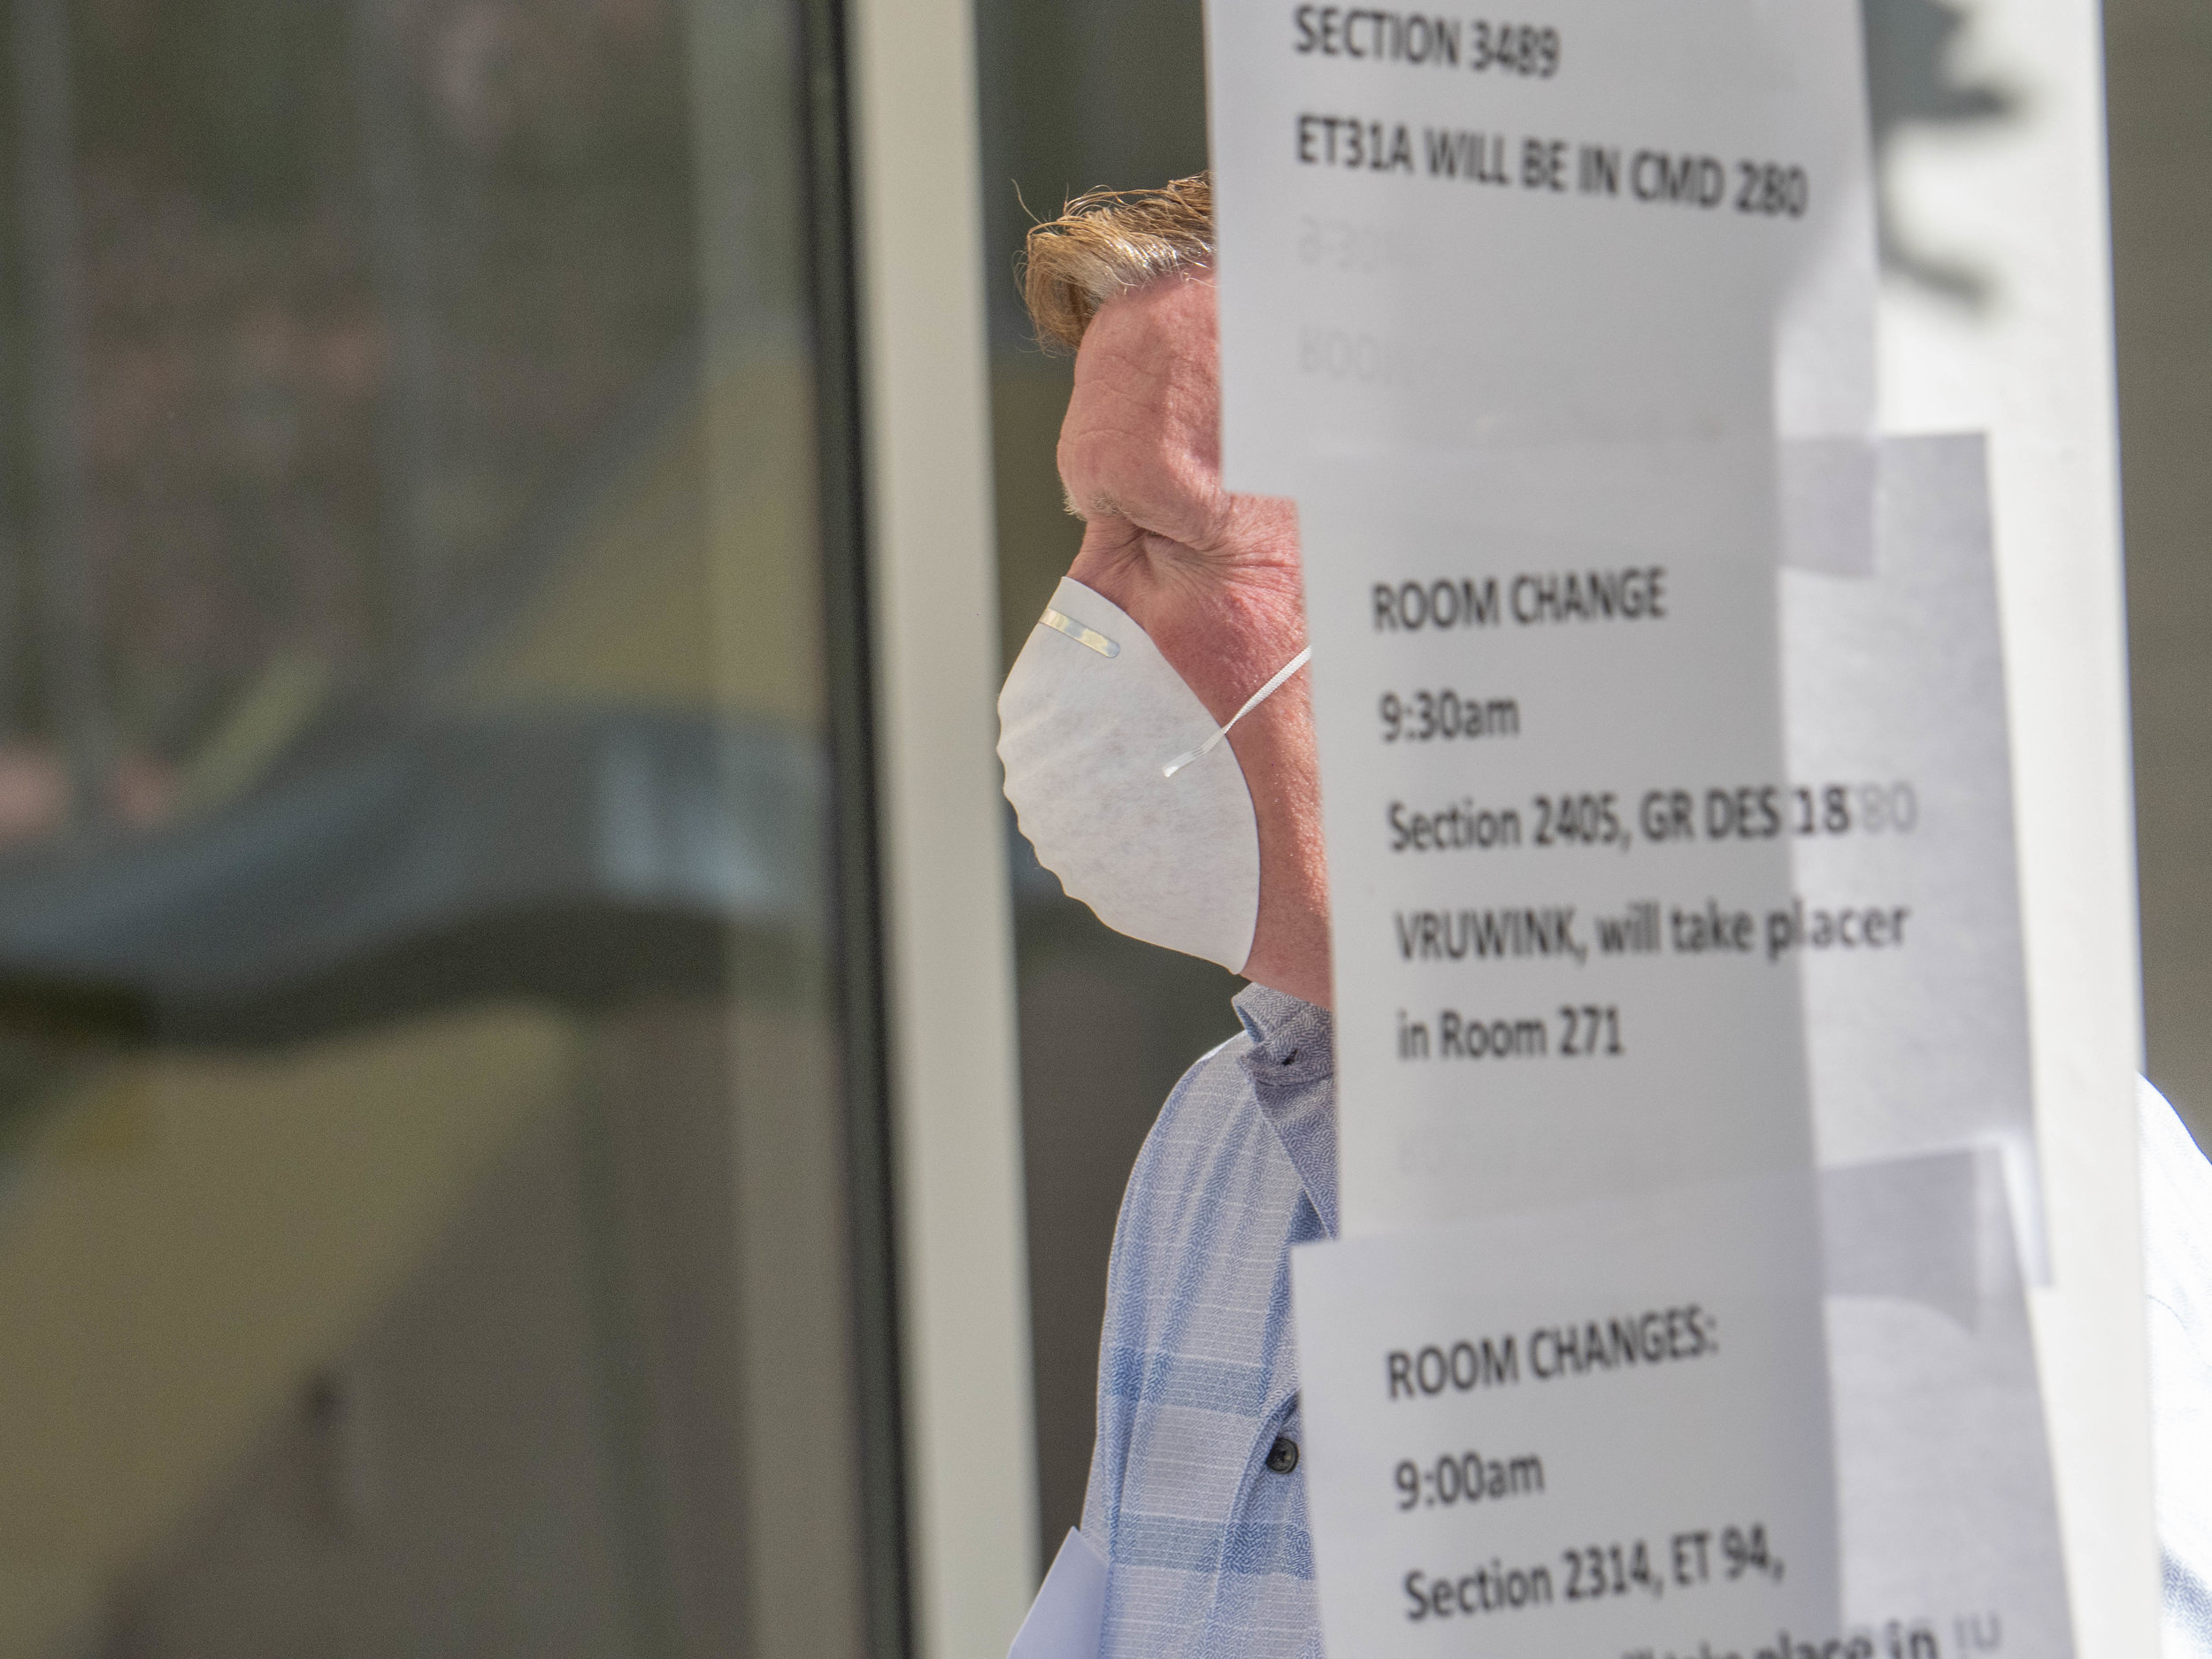 Brant Looney, an SMC administrator posts signs informing students of relocated classes. A chemical smell caused a building closure at the Center for Media Design. The building and computer lab will open again at 1pm according to facility staff. Friday, April 5, 2019, Santa Monica College, Santa Monica, California. (Victor Noerdlinger/Corsair)